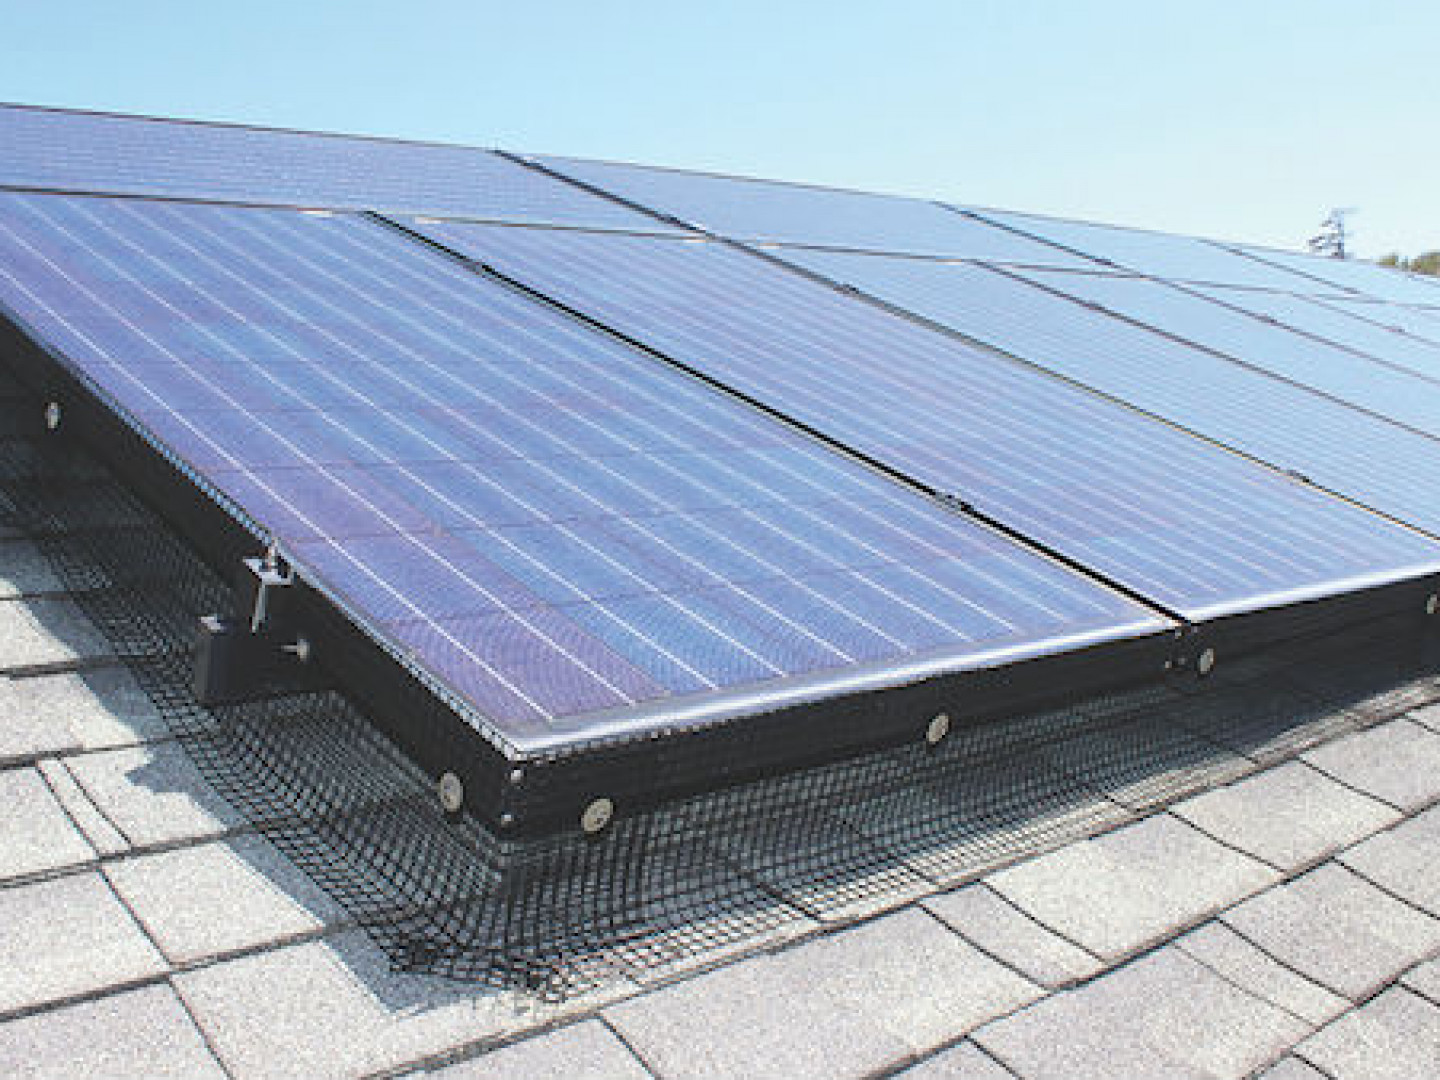 Don't Let Critters Damage Your Solar Panels